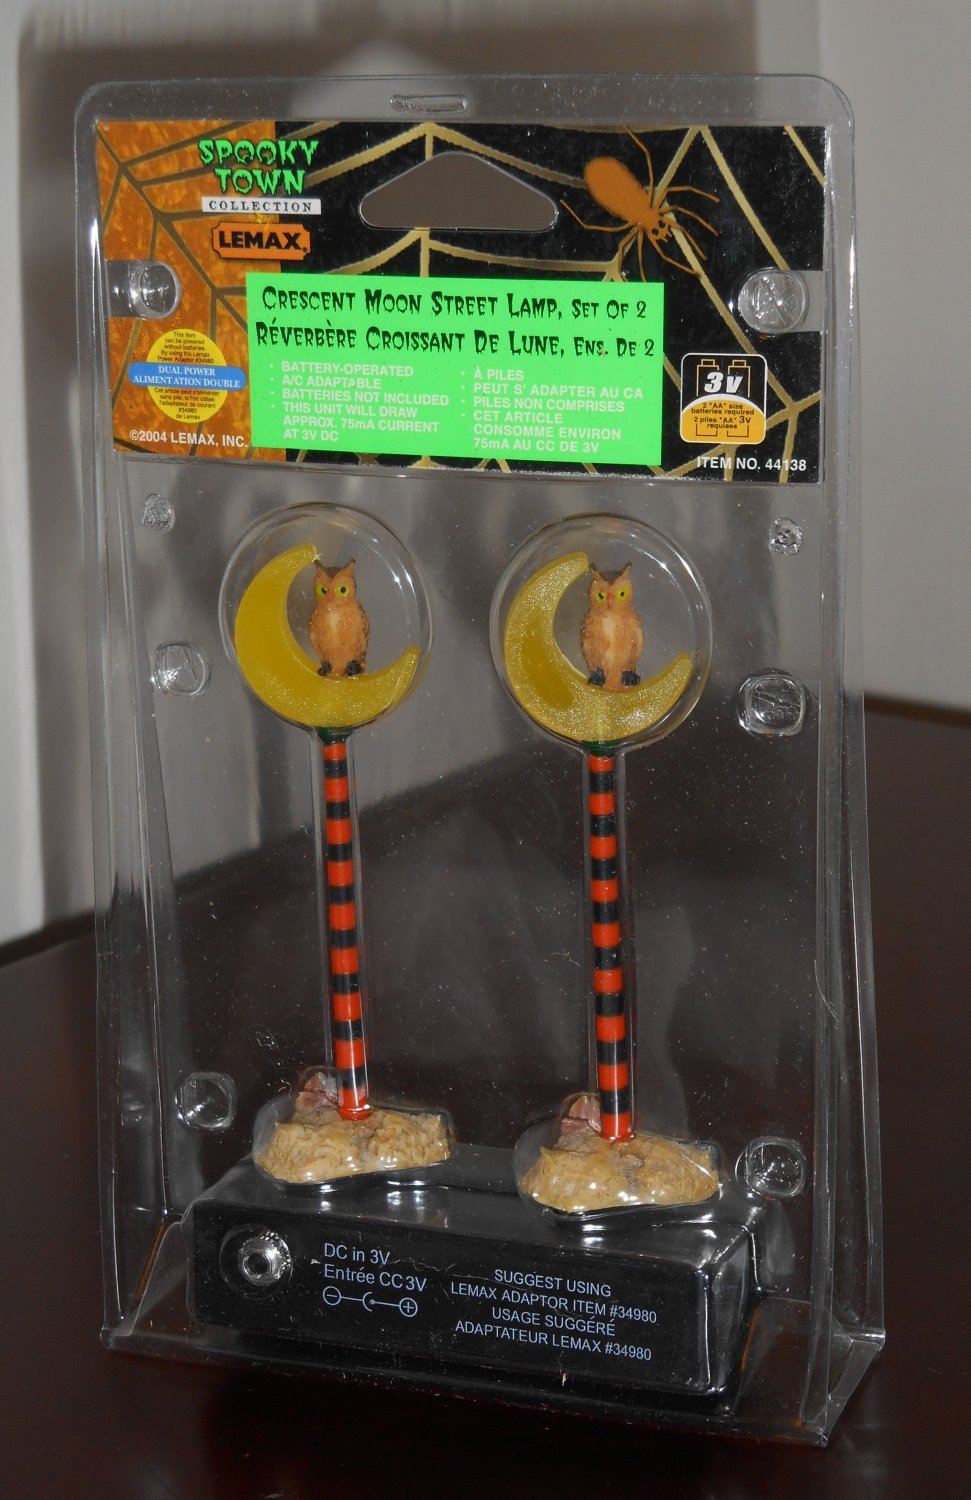 Crescent Moon Street Lamp Set of 2 Lemax 44138 Spooky Town Collection Battery Operated Halloween